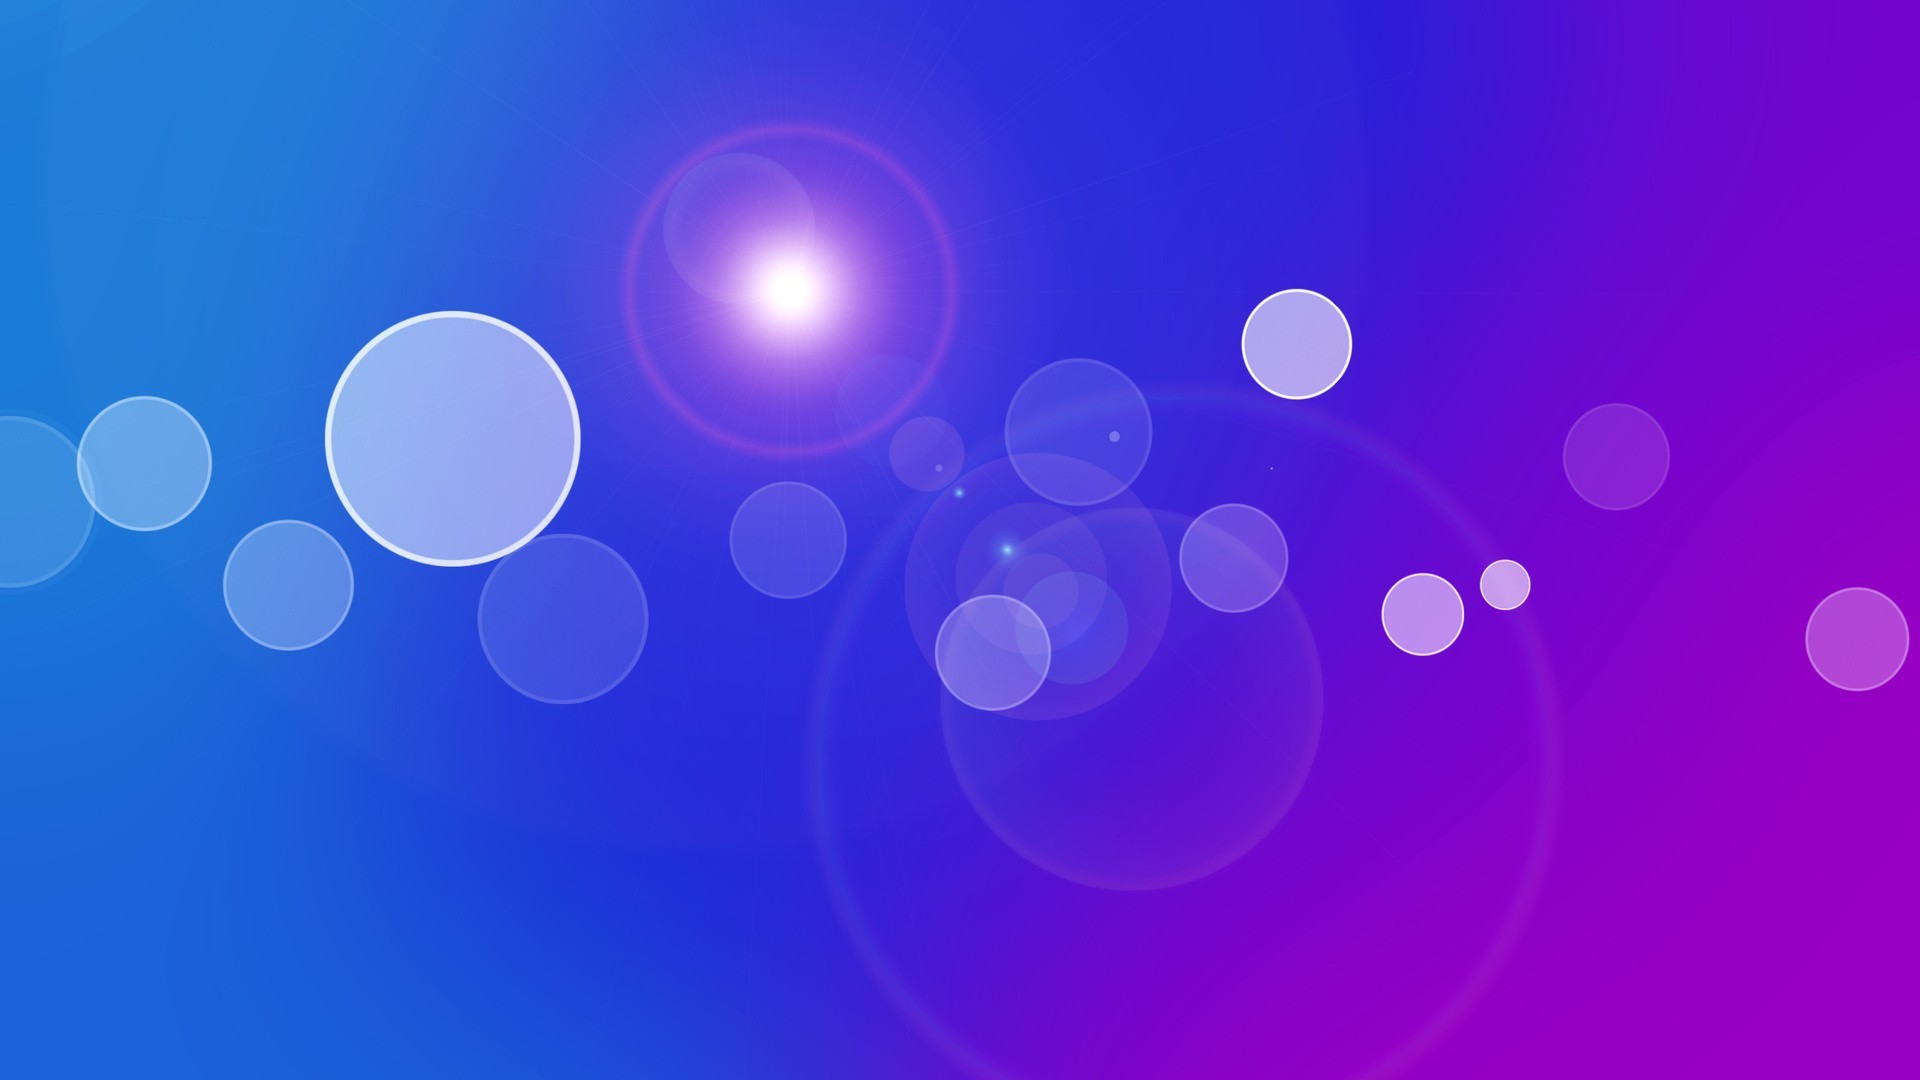 Light abstract blue purple circles gradient colors wallpaper | |  210111 | WallpaperUP